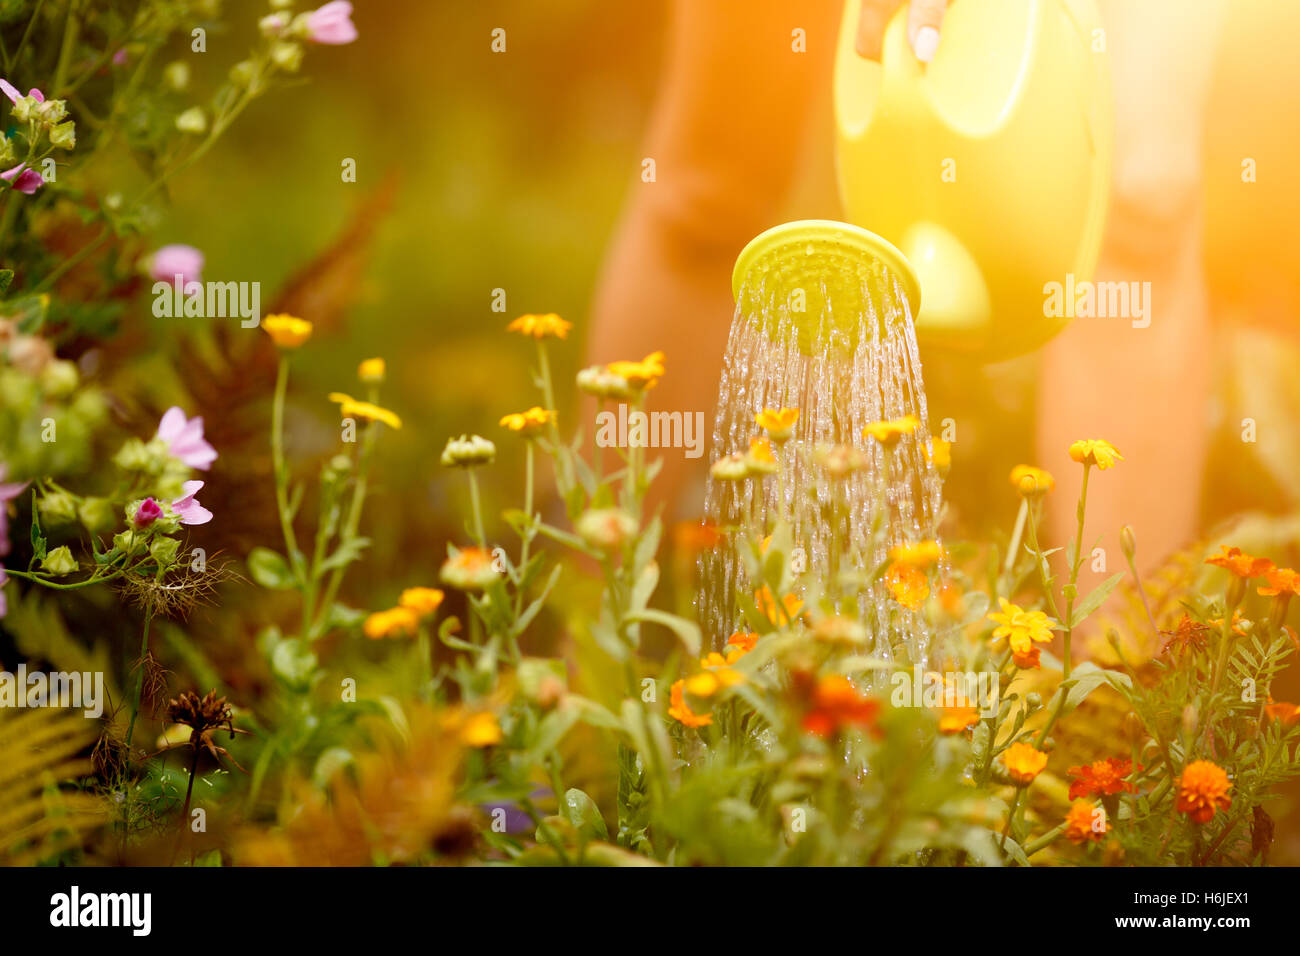 Female hand watering flowers outdoors - Stock Image